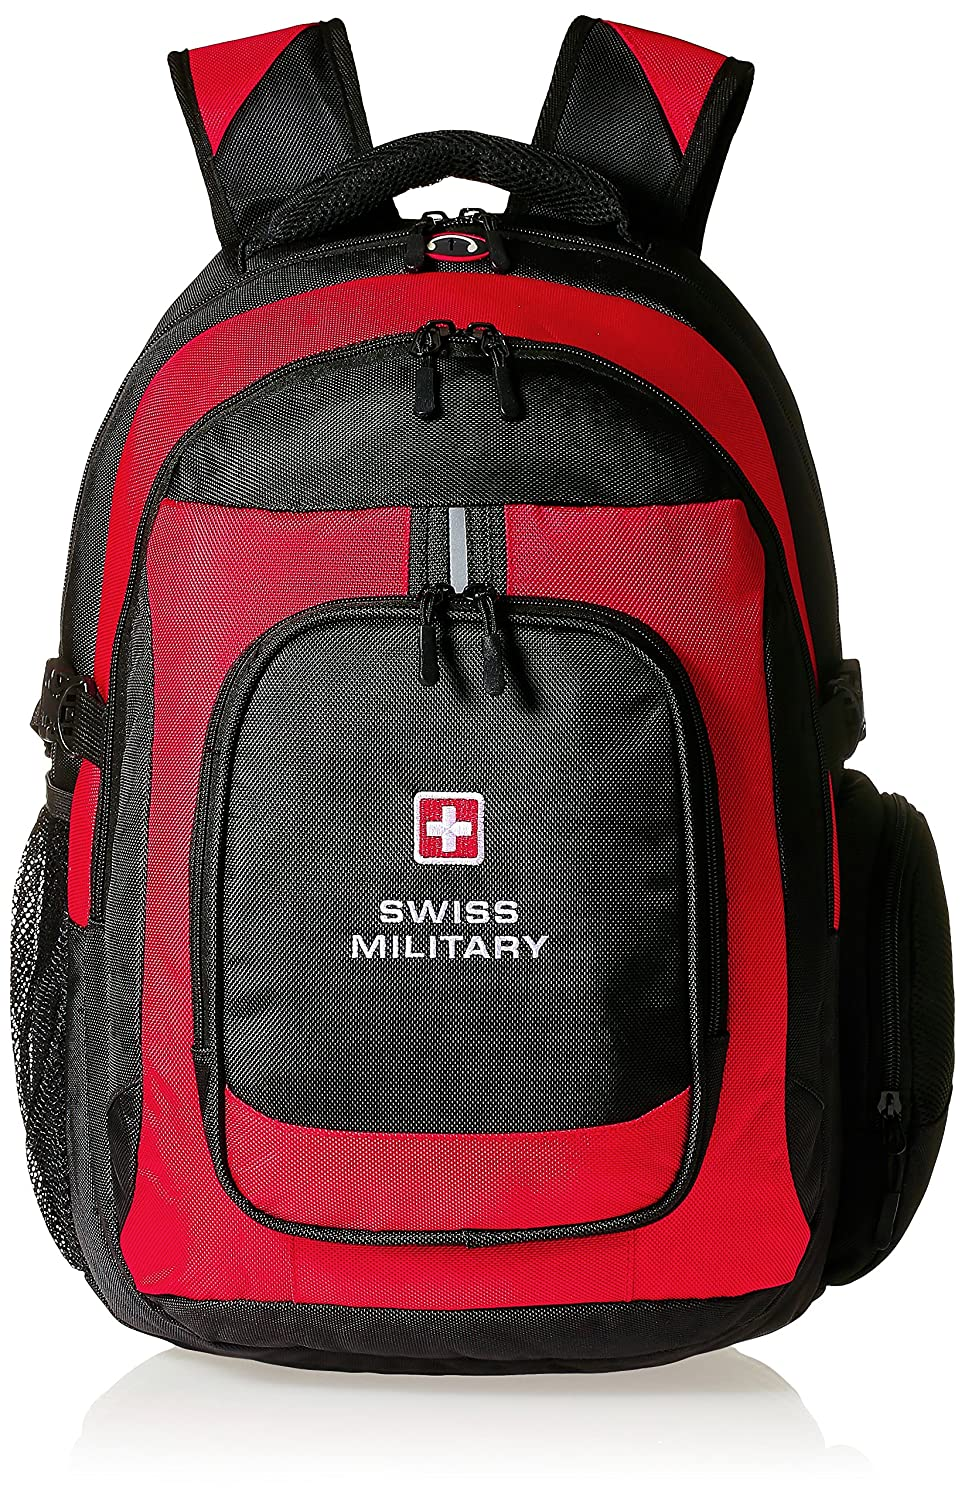 Swiss Military Luggage Bags & Backpacks low price image 1